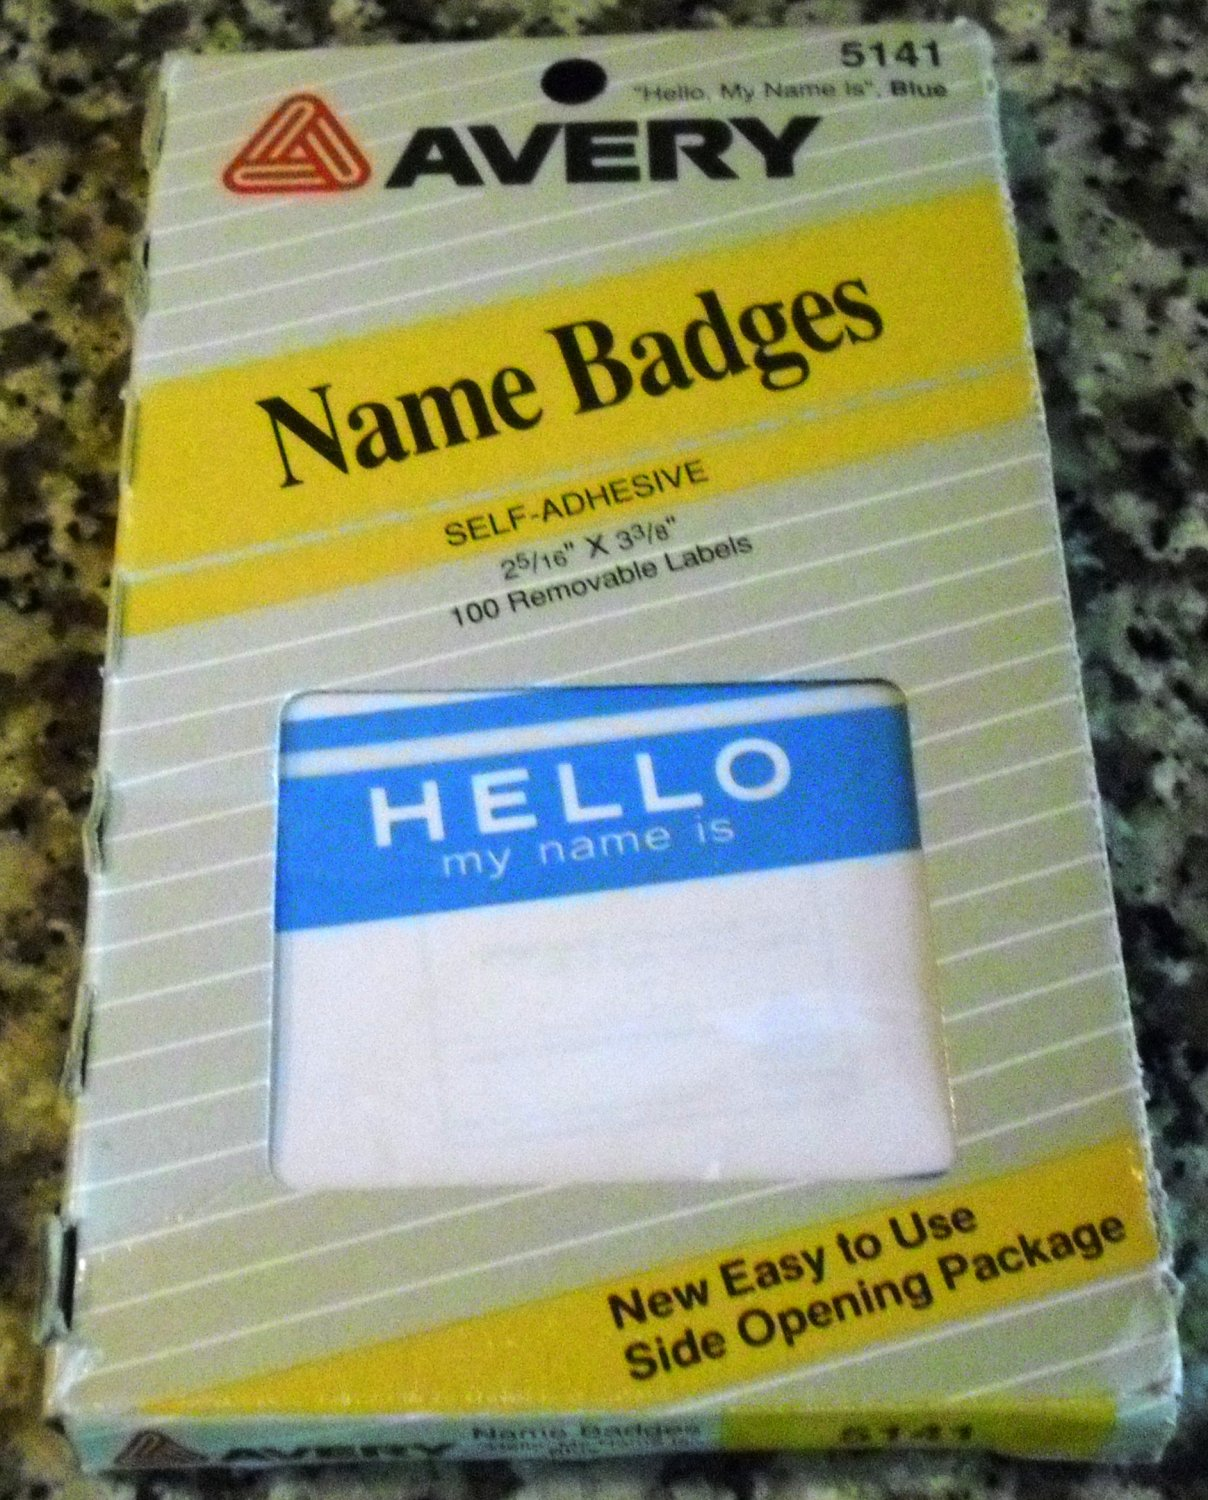 Avery Print or Write Self-Adhesive Name Badges 5141 (Pack of 100)